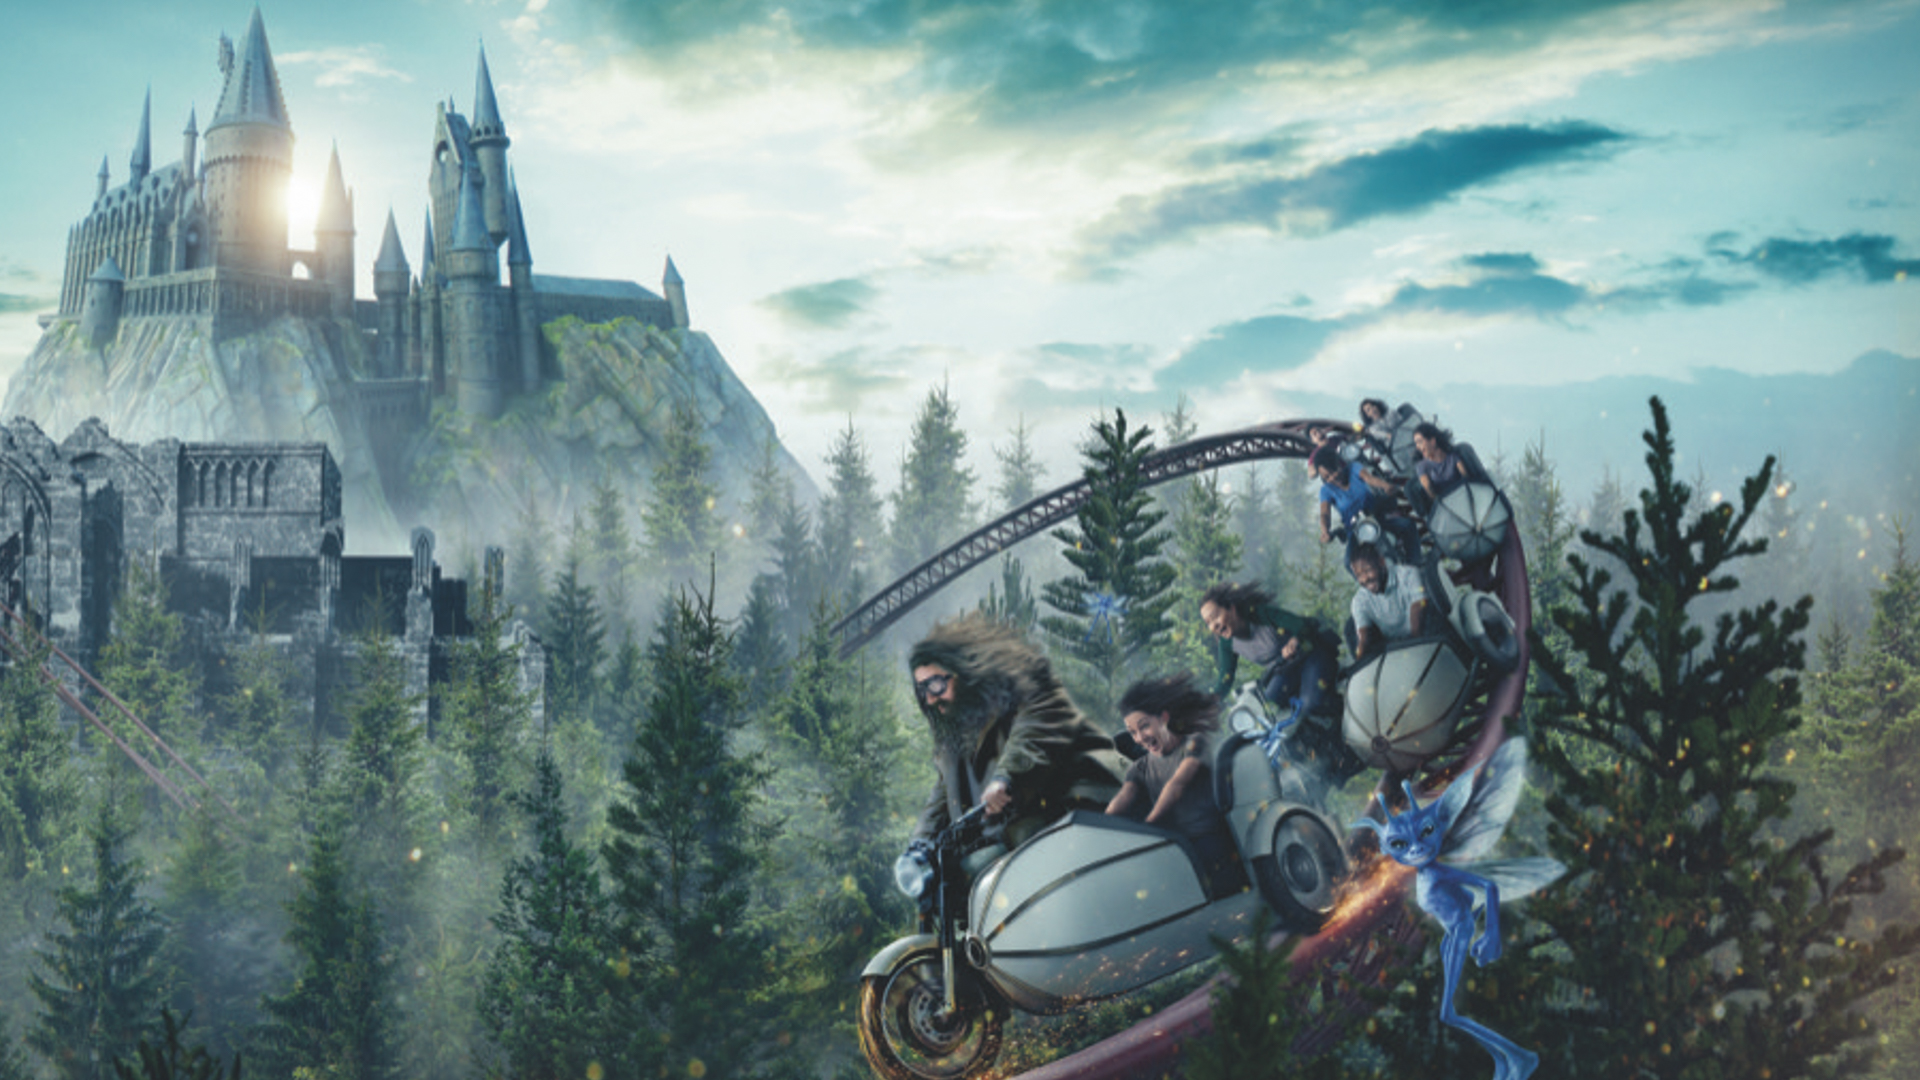 """Slide 16 of 21: Location: Orlando, Florida Admission price: $110+ Ride opening: June 13, 2019 On March 12, 2019, J.K. Rowling's site Pottermore described Hagrid's Magical Creatures Motorbike Adventure as """"a bit more complex than just strapping yourself into a rollercoaster."""" Indeed, Universal's newly released videoreveals that the ride is an immersive, story-telling experience brought to life by art director Alan Gilmore, who worked on the Harry Potter films. Hop aboard an enchanted motorbike just like Hagrid's, and whiz through Hogwarts' infamous forbidden forest, replete with over 1,000 live trees. As you take twists and turns — and even go backward — at speeds of up to 50 miles per hour, you'll discover some of the rarest magical creatures from the Harry Potter movies — as well as a surprise creature Universal is currently keeping under wraps. For Harry Potter fans, this ride is absolutely worth the price of admission. It's like you've flown straight into the wizarding world."""